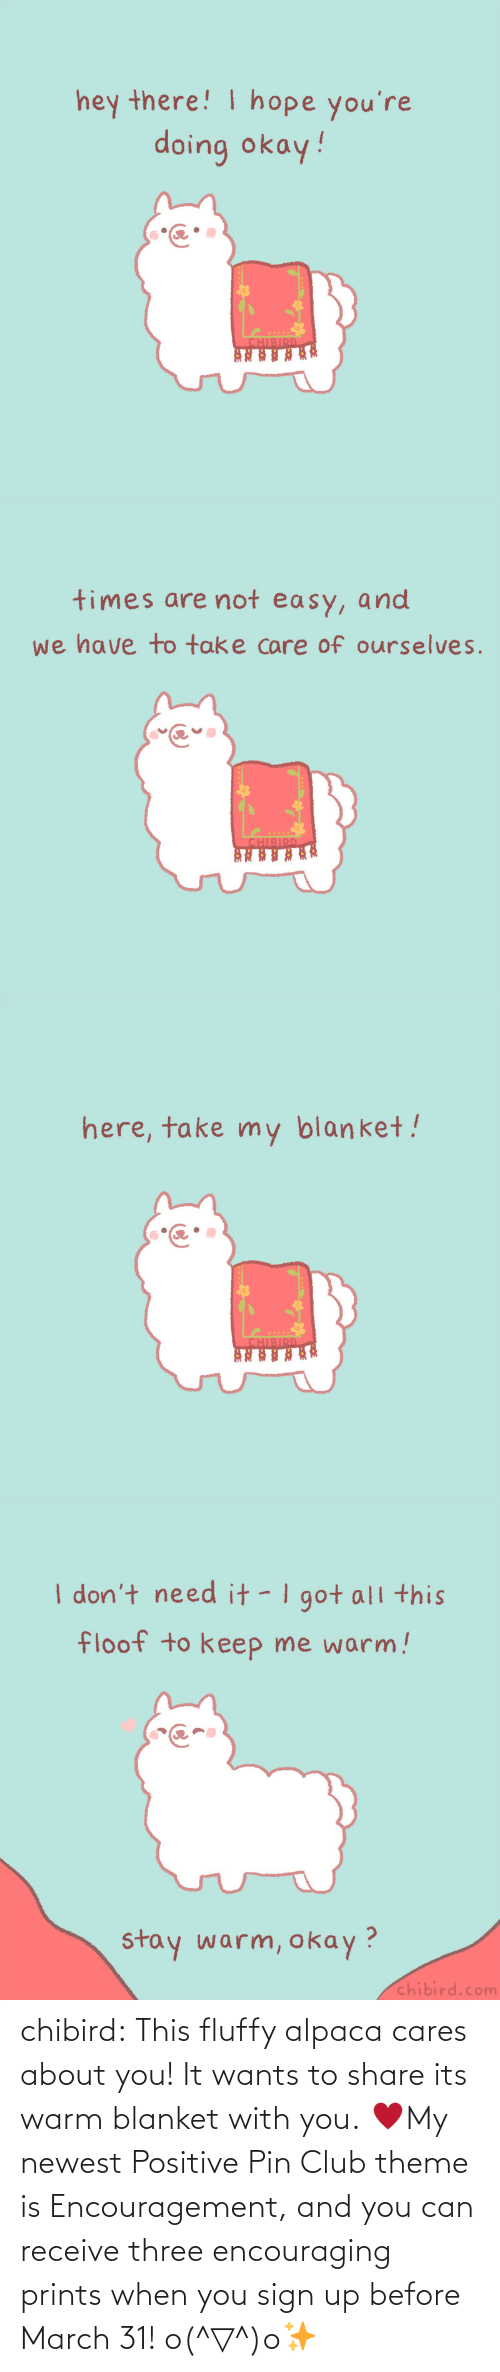 Cares: chibird:  This fluffy alpaca cares about you! It wants to share its warm blanket with you. ♥My newest Positive Pin Club theme is Encouragement, and you can receive three encouraging prints when you sign up before March 31! o(^▽^)o✨